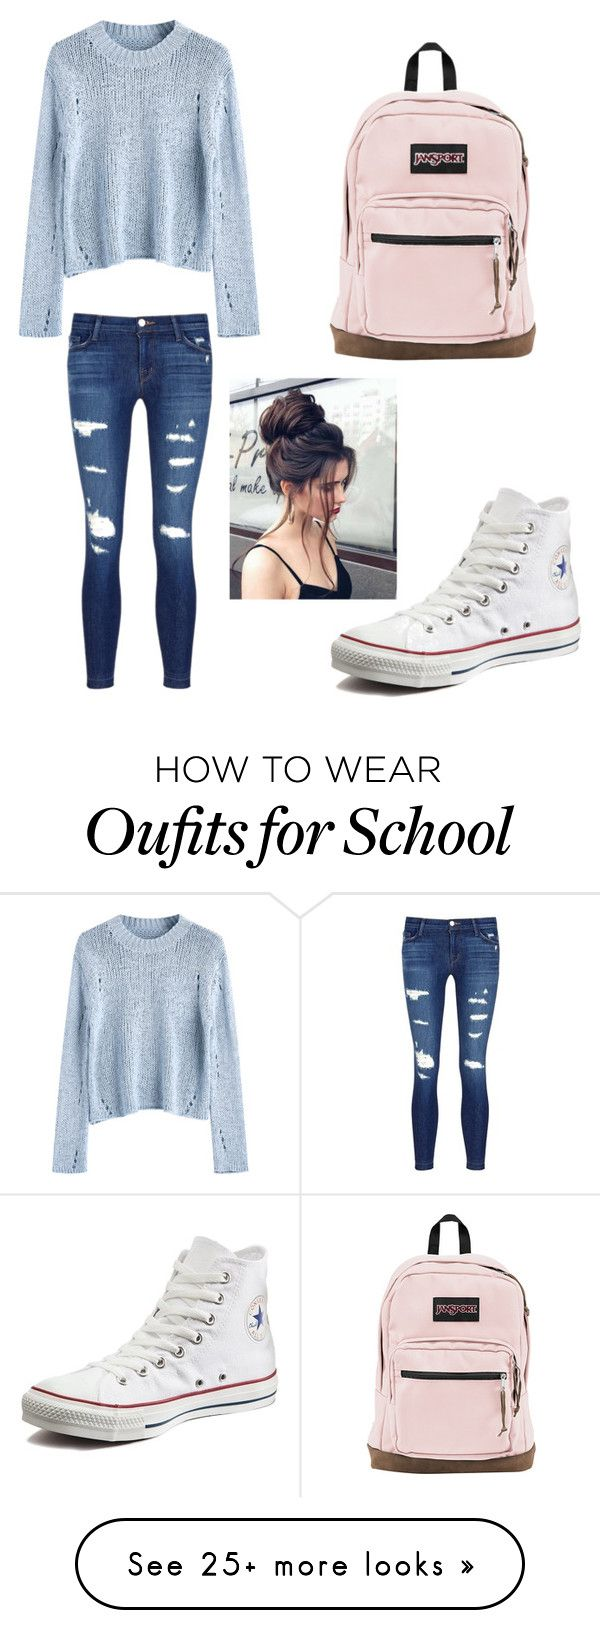 """""""Casual school outfit"""" by itskaylamarie on Polyvore featuring J Brand, Converse and JanSport"""